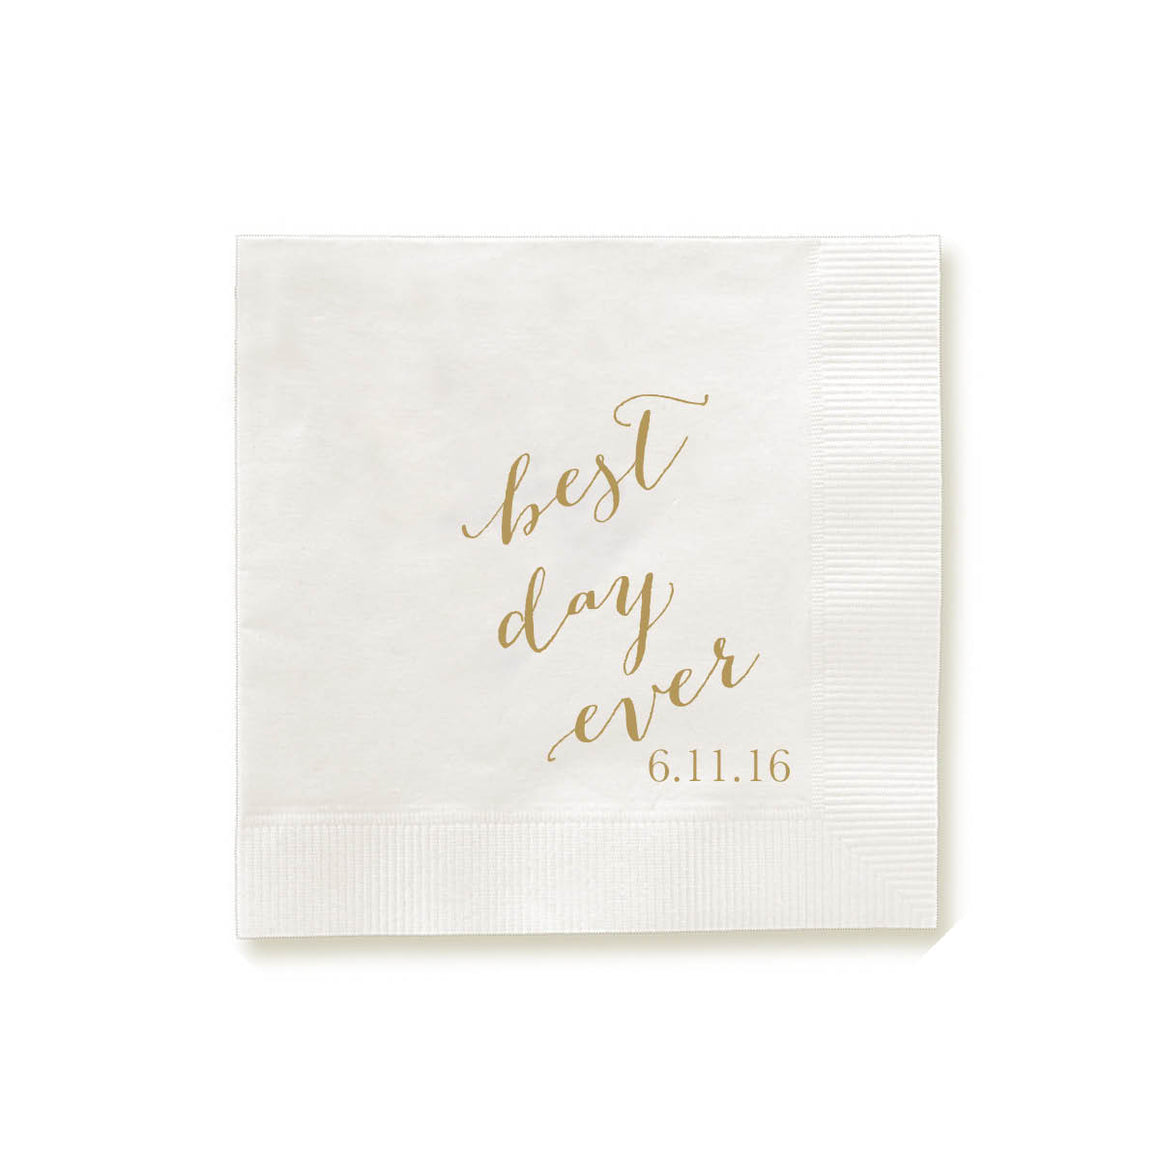 Best Day Ever Personalized Foil Pressed Napkins